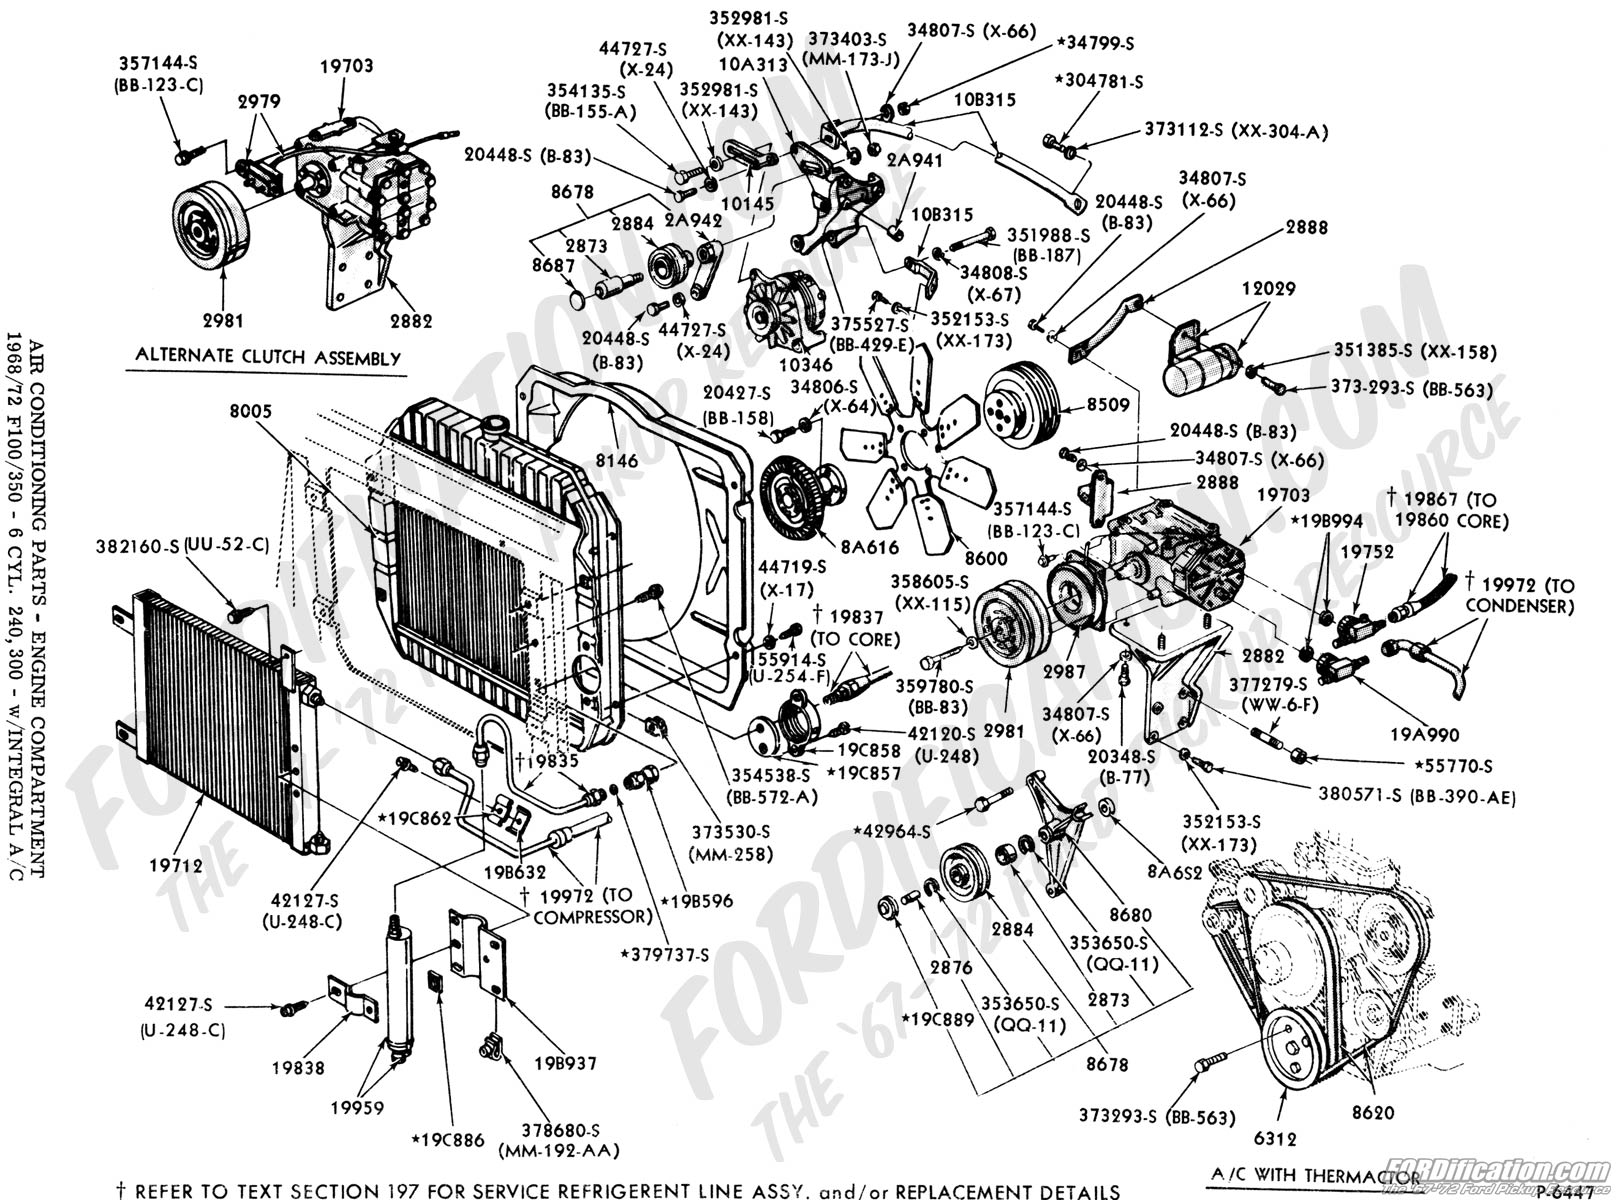 66 Chevelle Turn Signal Wiring Diagram besides 74 Bug Wiring Diagram together with Gm Car Diagrams additionally Towmaster Wiring Diagrams as well File Name 1996 Dodge Neon Engine Fuse Box Map Resolution 677 X. on 1972 vw beetle fuse box diagram